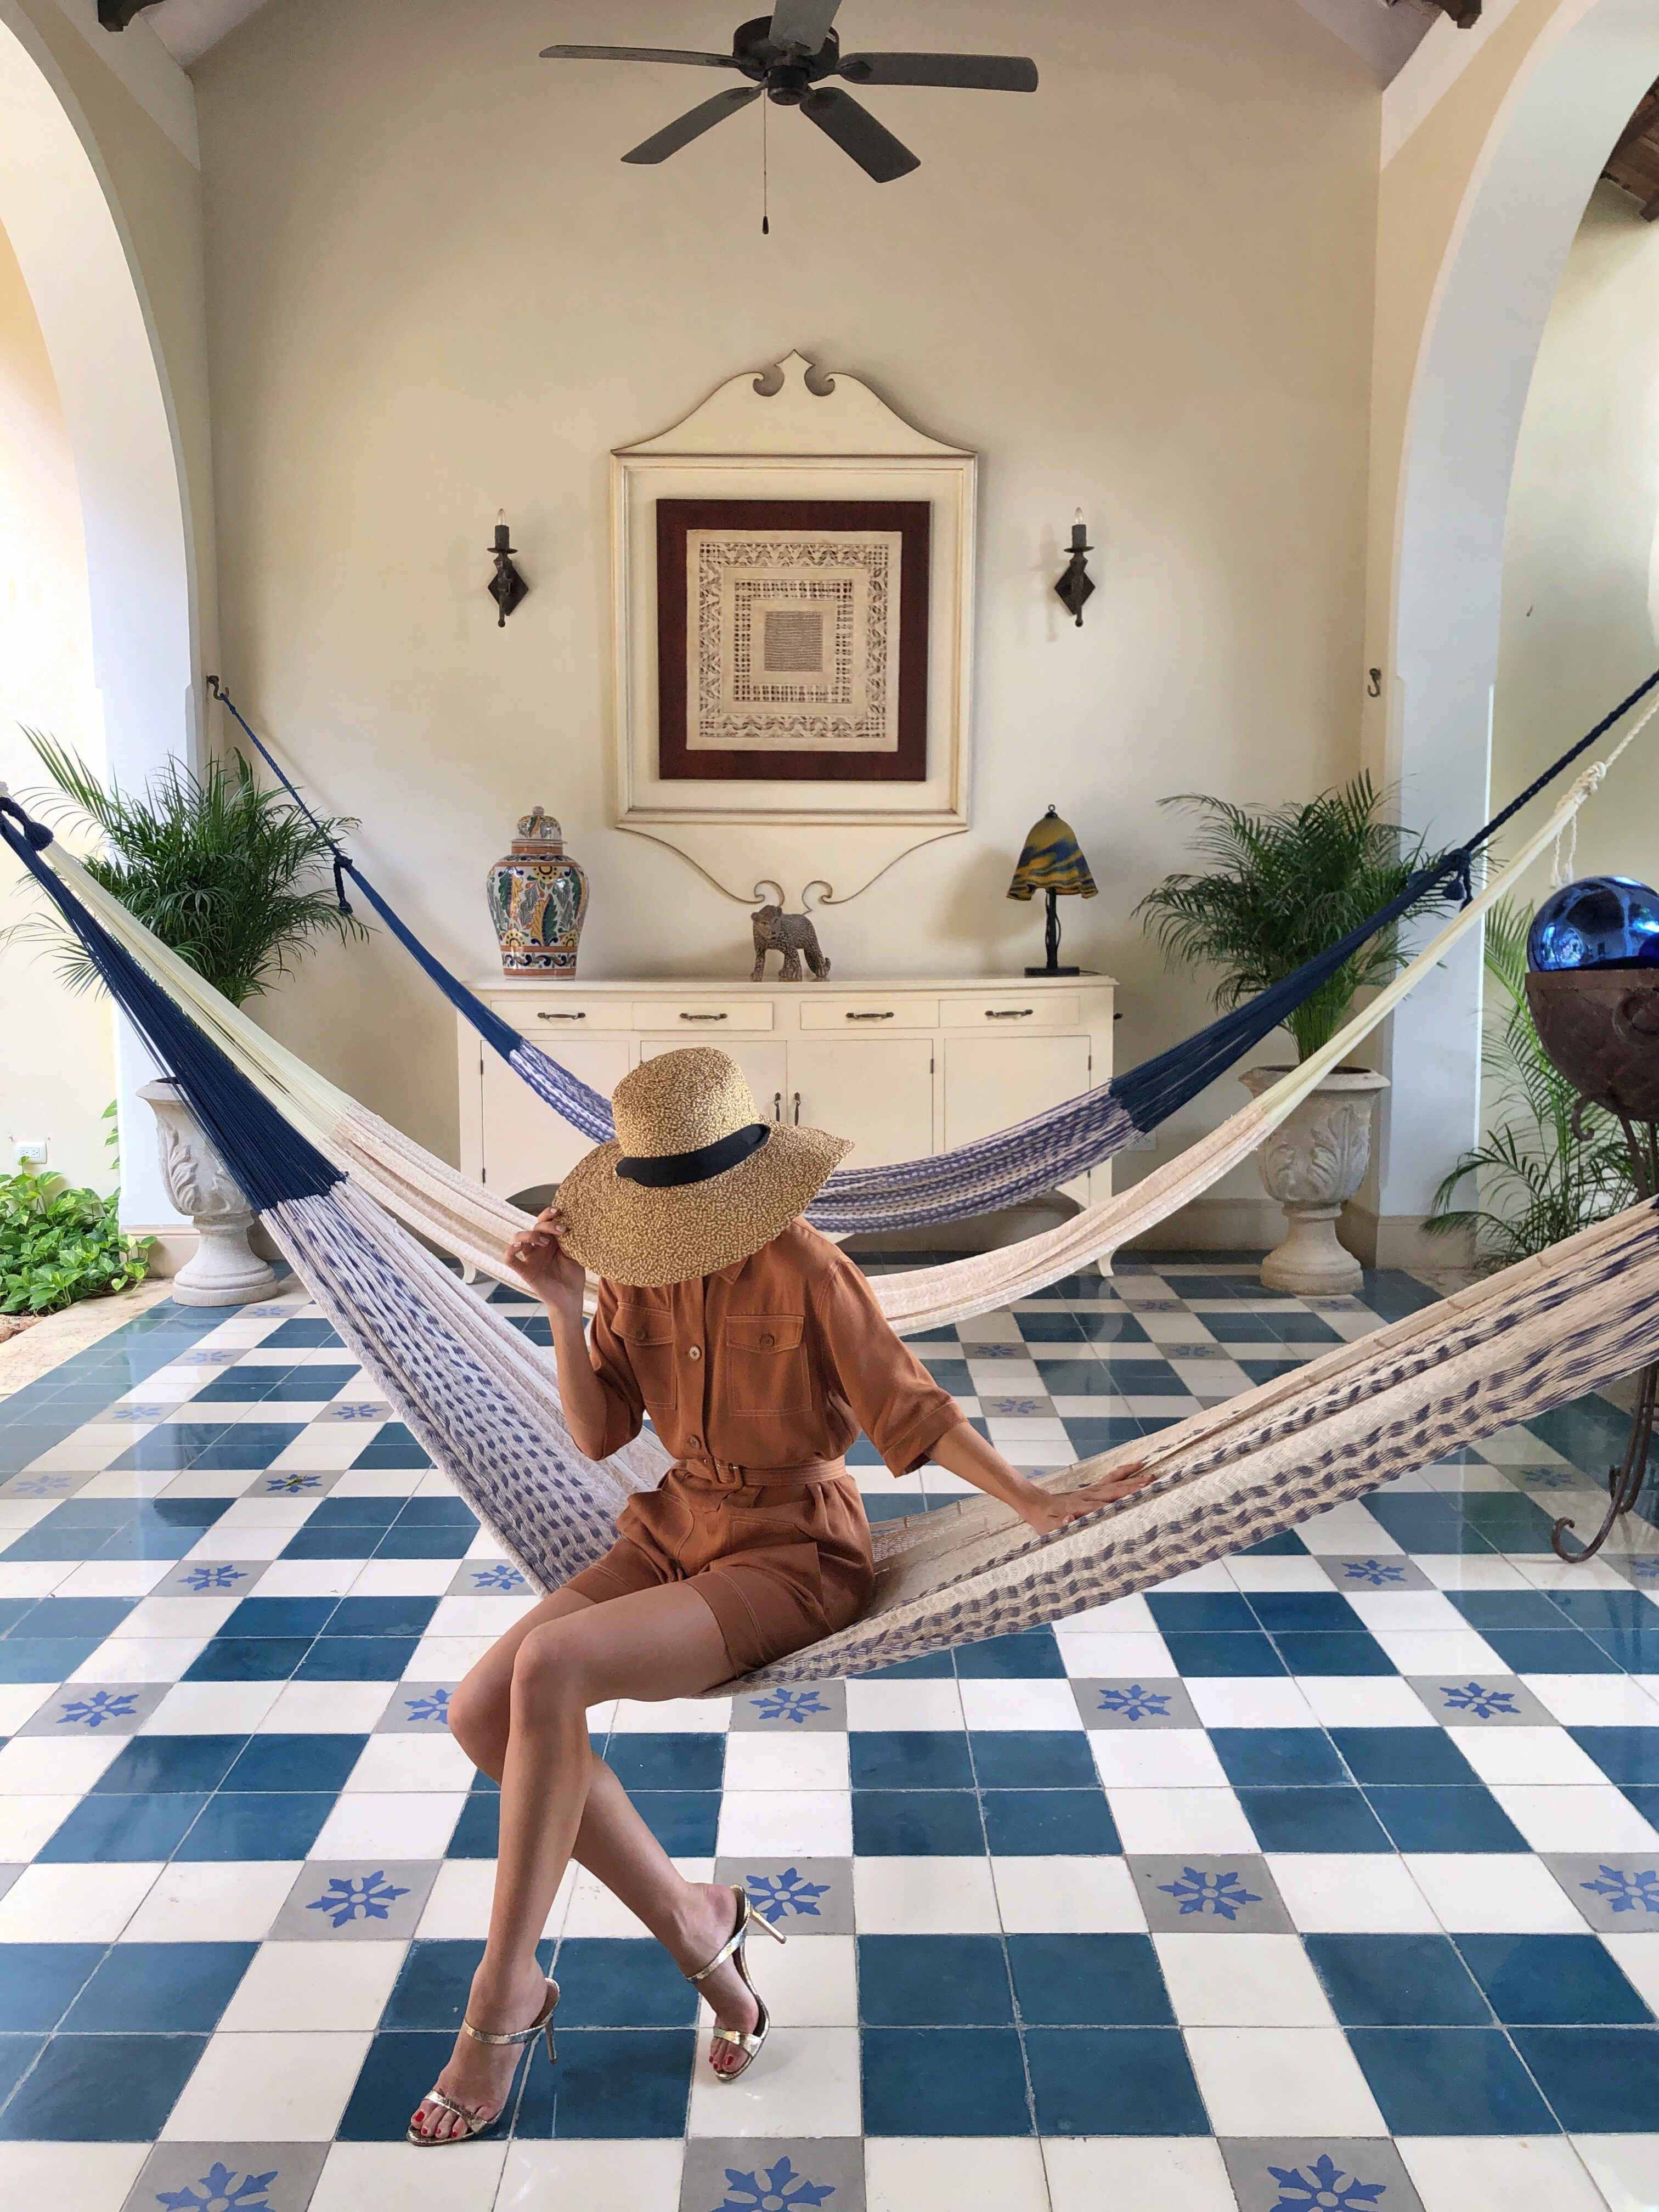 Stephanie Hill from The Style Bungalow featuring My Guide to Mérida